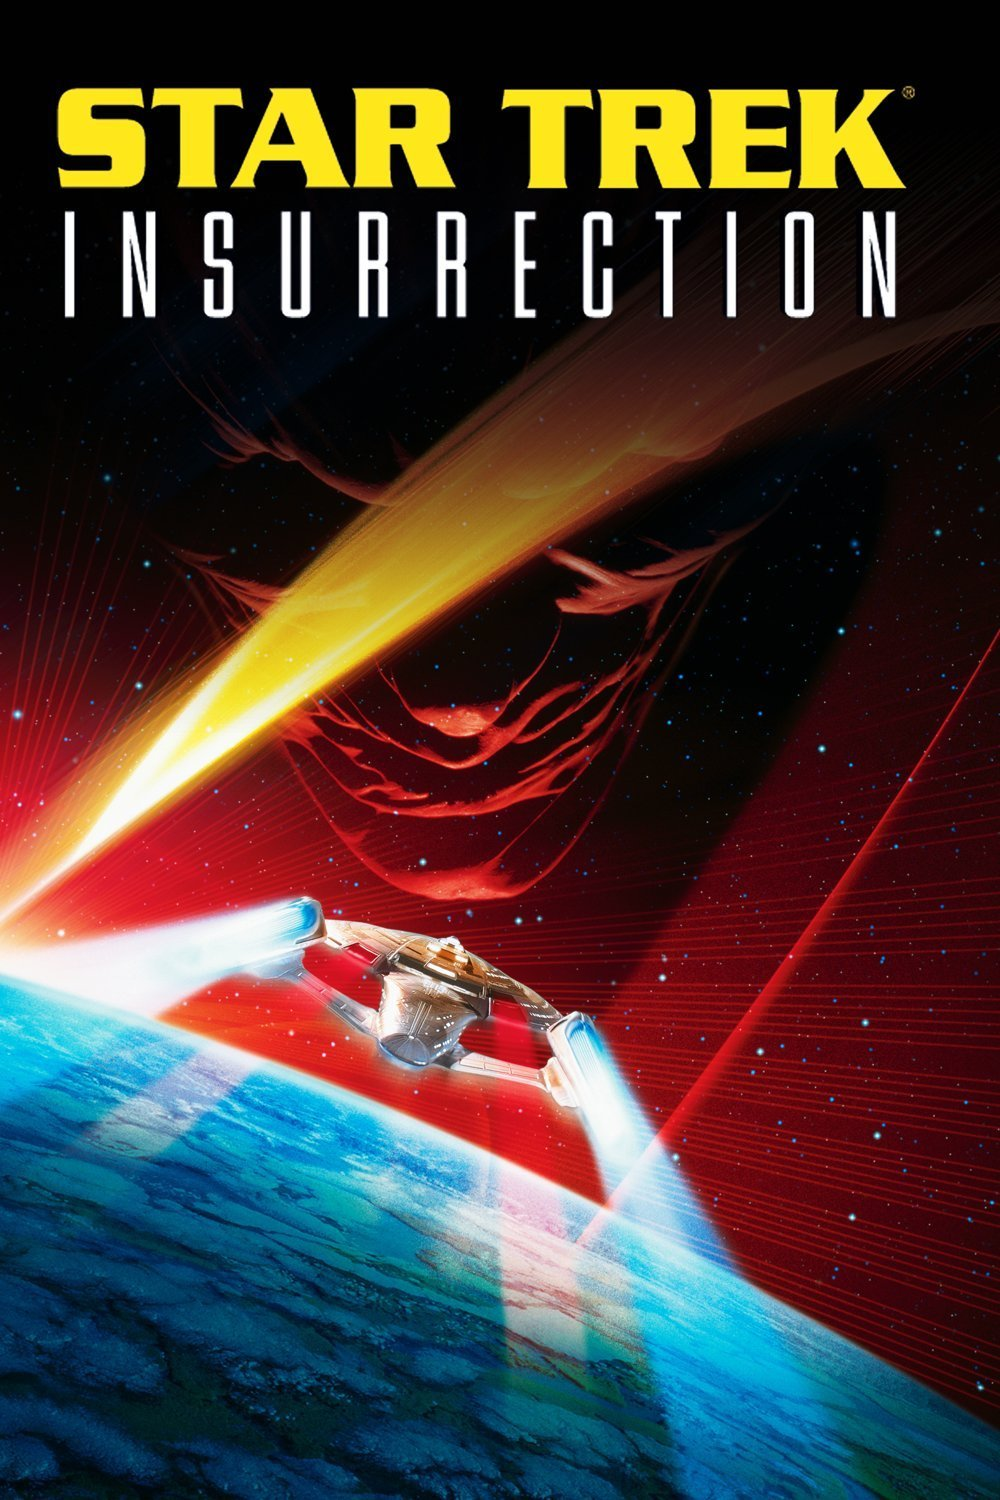 Worldview Discussion on Star Trek Insurrection 1